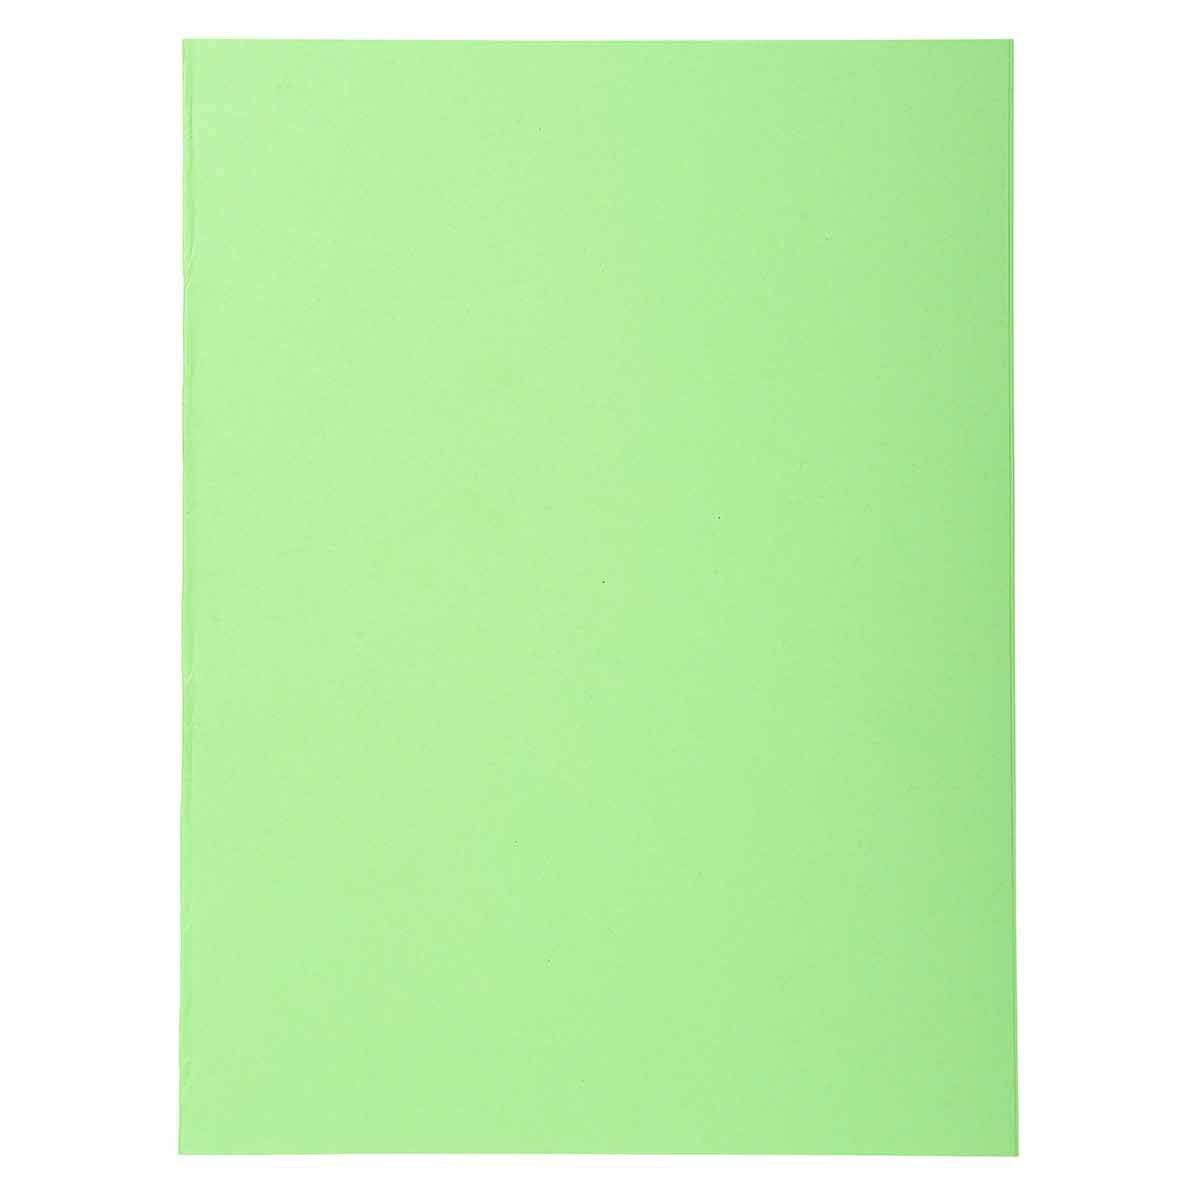 Exacompta Forever Square Cut Folders A4 170gsm 5 Packs of 100 Bright Green